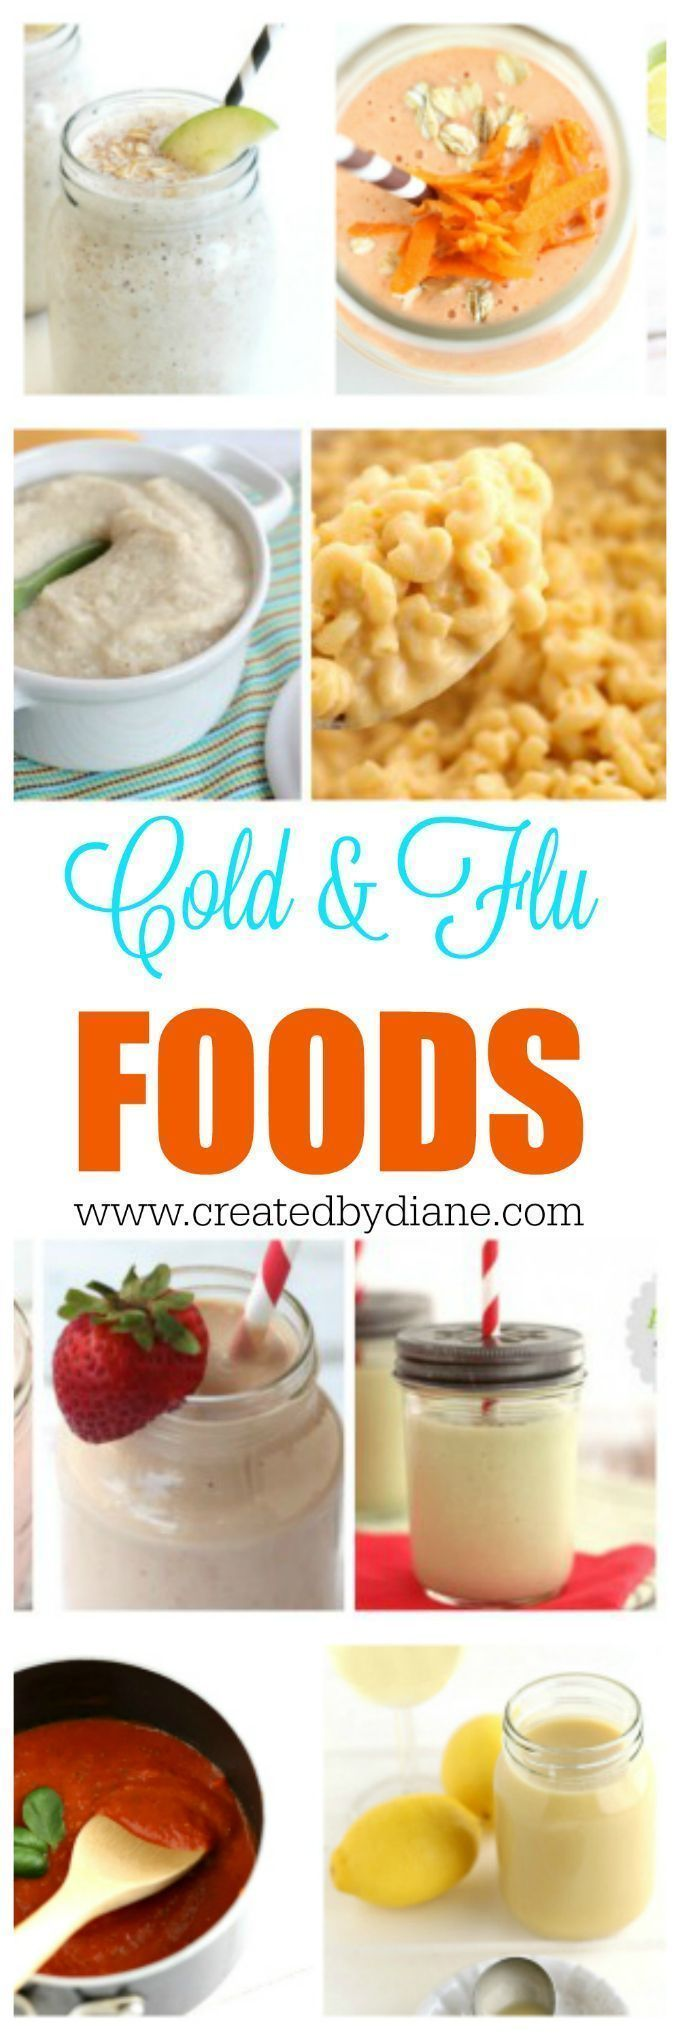 cool soft food diet - dental surgery, wisdom tooth removal, dental implant, tonsillec... #softfoodsaftersurgeryteeth cool soft food diet - dental surgery, wisdom tooth removal, dental implant, tonsillec... #softfoodsaftersurgeryteeth cool soft food diet - dental surgery, wisdom tooth removal, dental implant, tonsillec... #softfoodsaftersurgeryteeth cool soft food diet - dental surgery, wisdom tooth removal, dental implant, tonsillec... #softfoodsaftersurgeryteeth cool soft food diet - dental sur #softfoodsaftersurgeryteeth